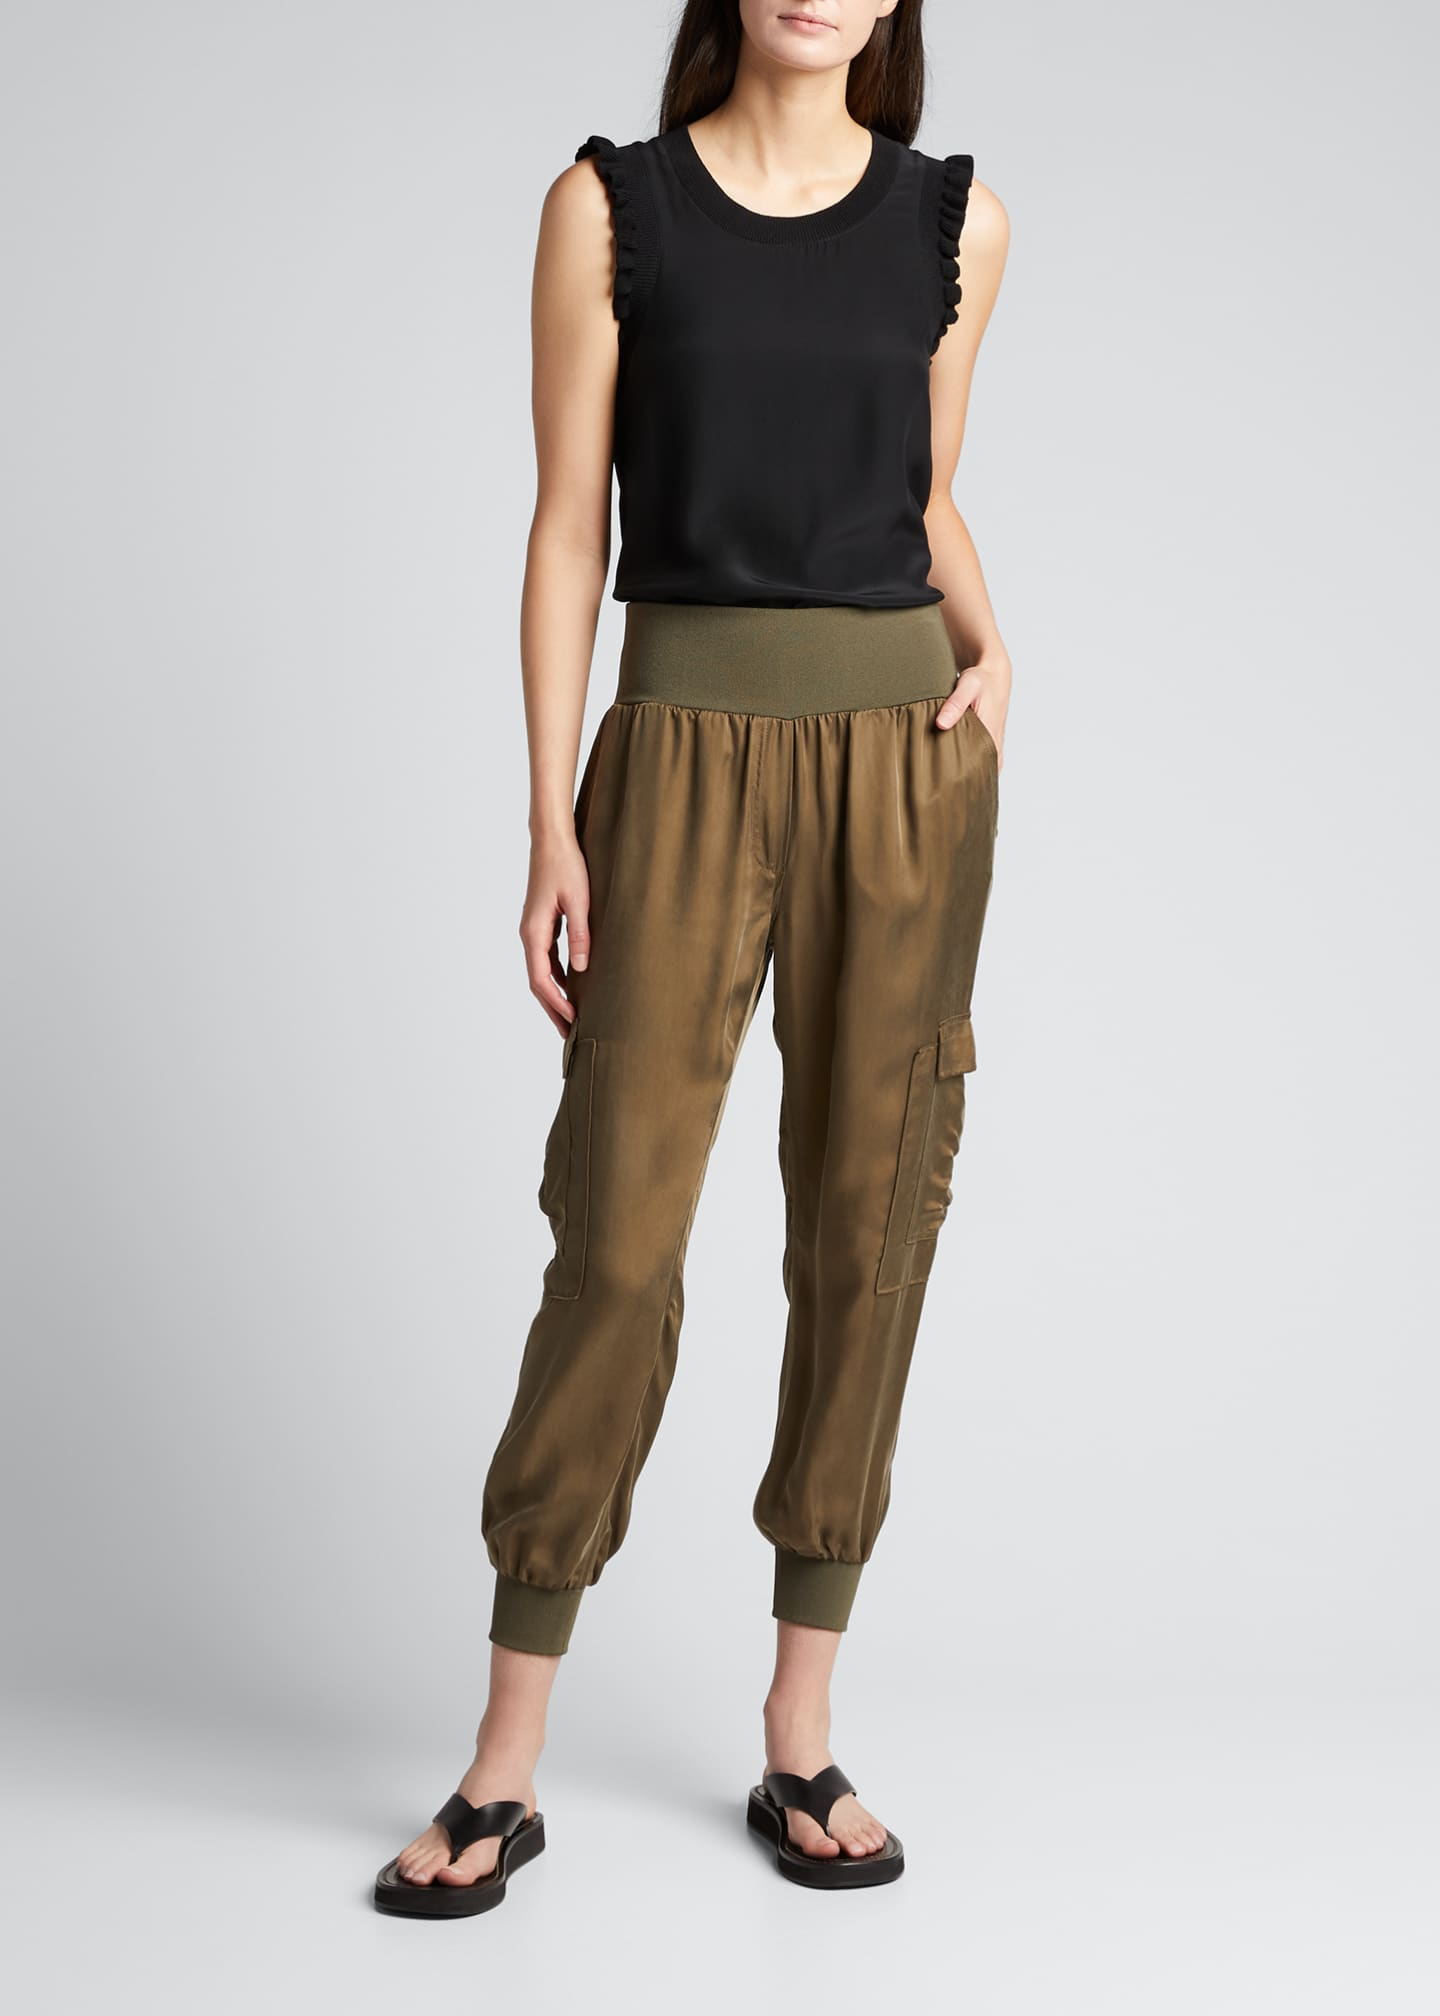 Image 1 of 3: Tous Les Jours Lenore Crewneck Sleeveless Silk Top